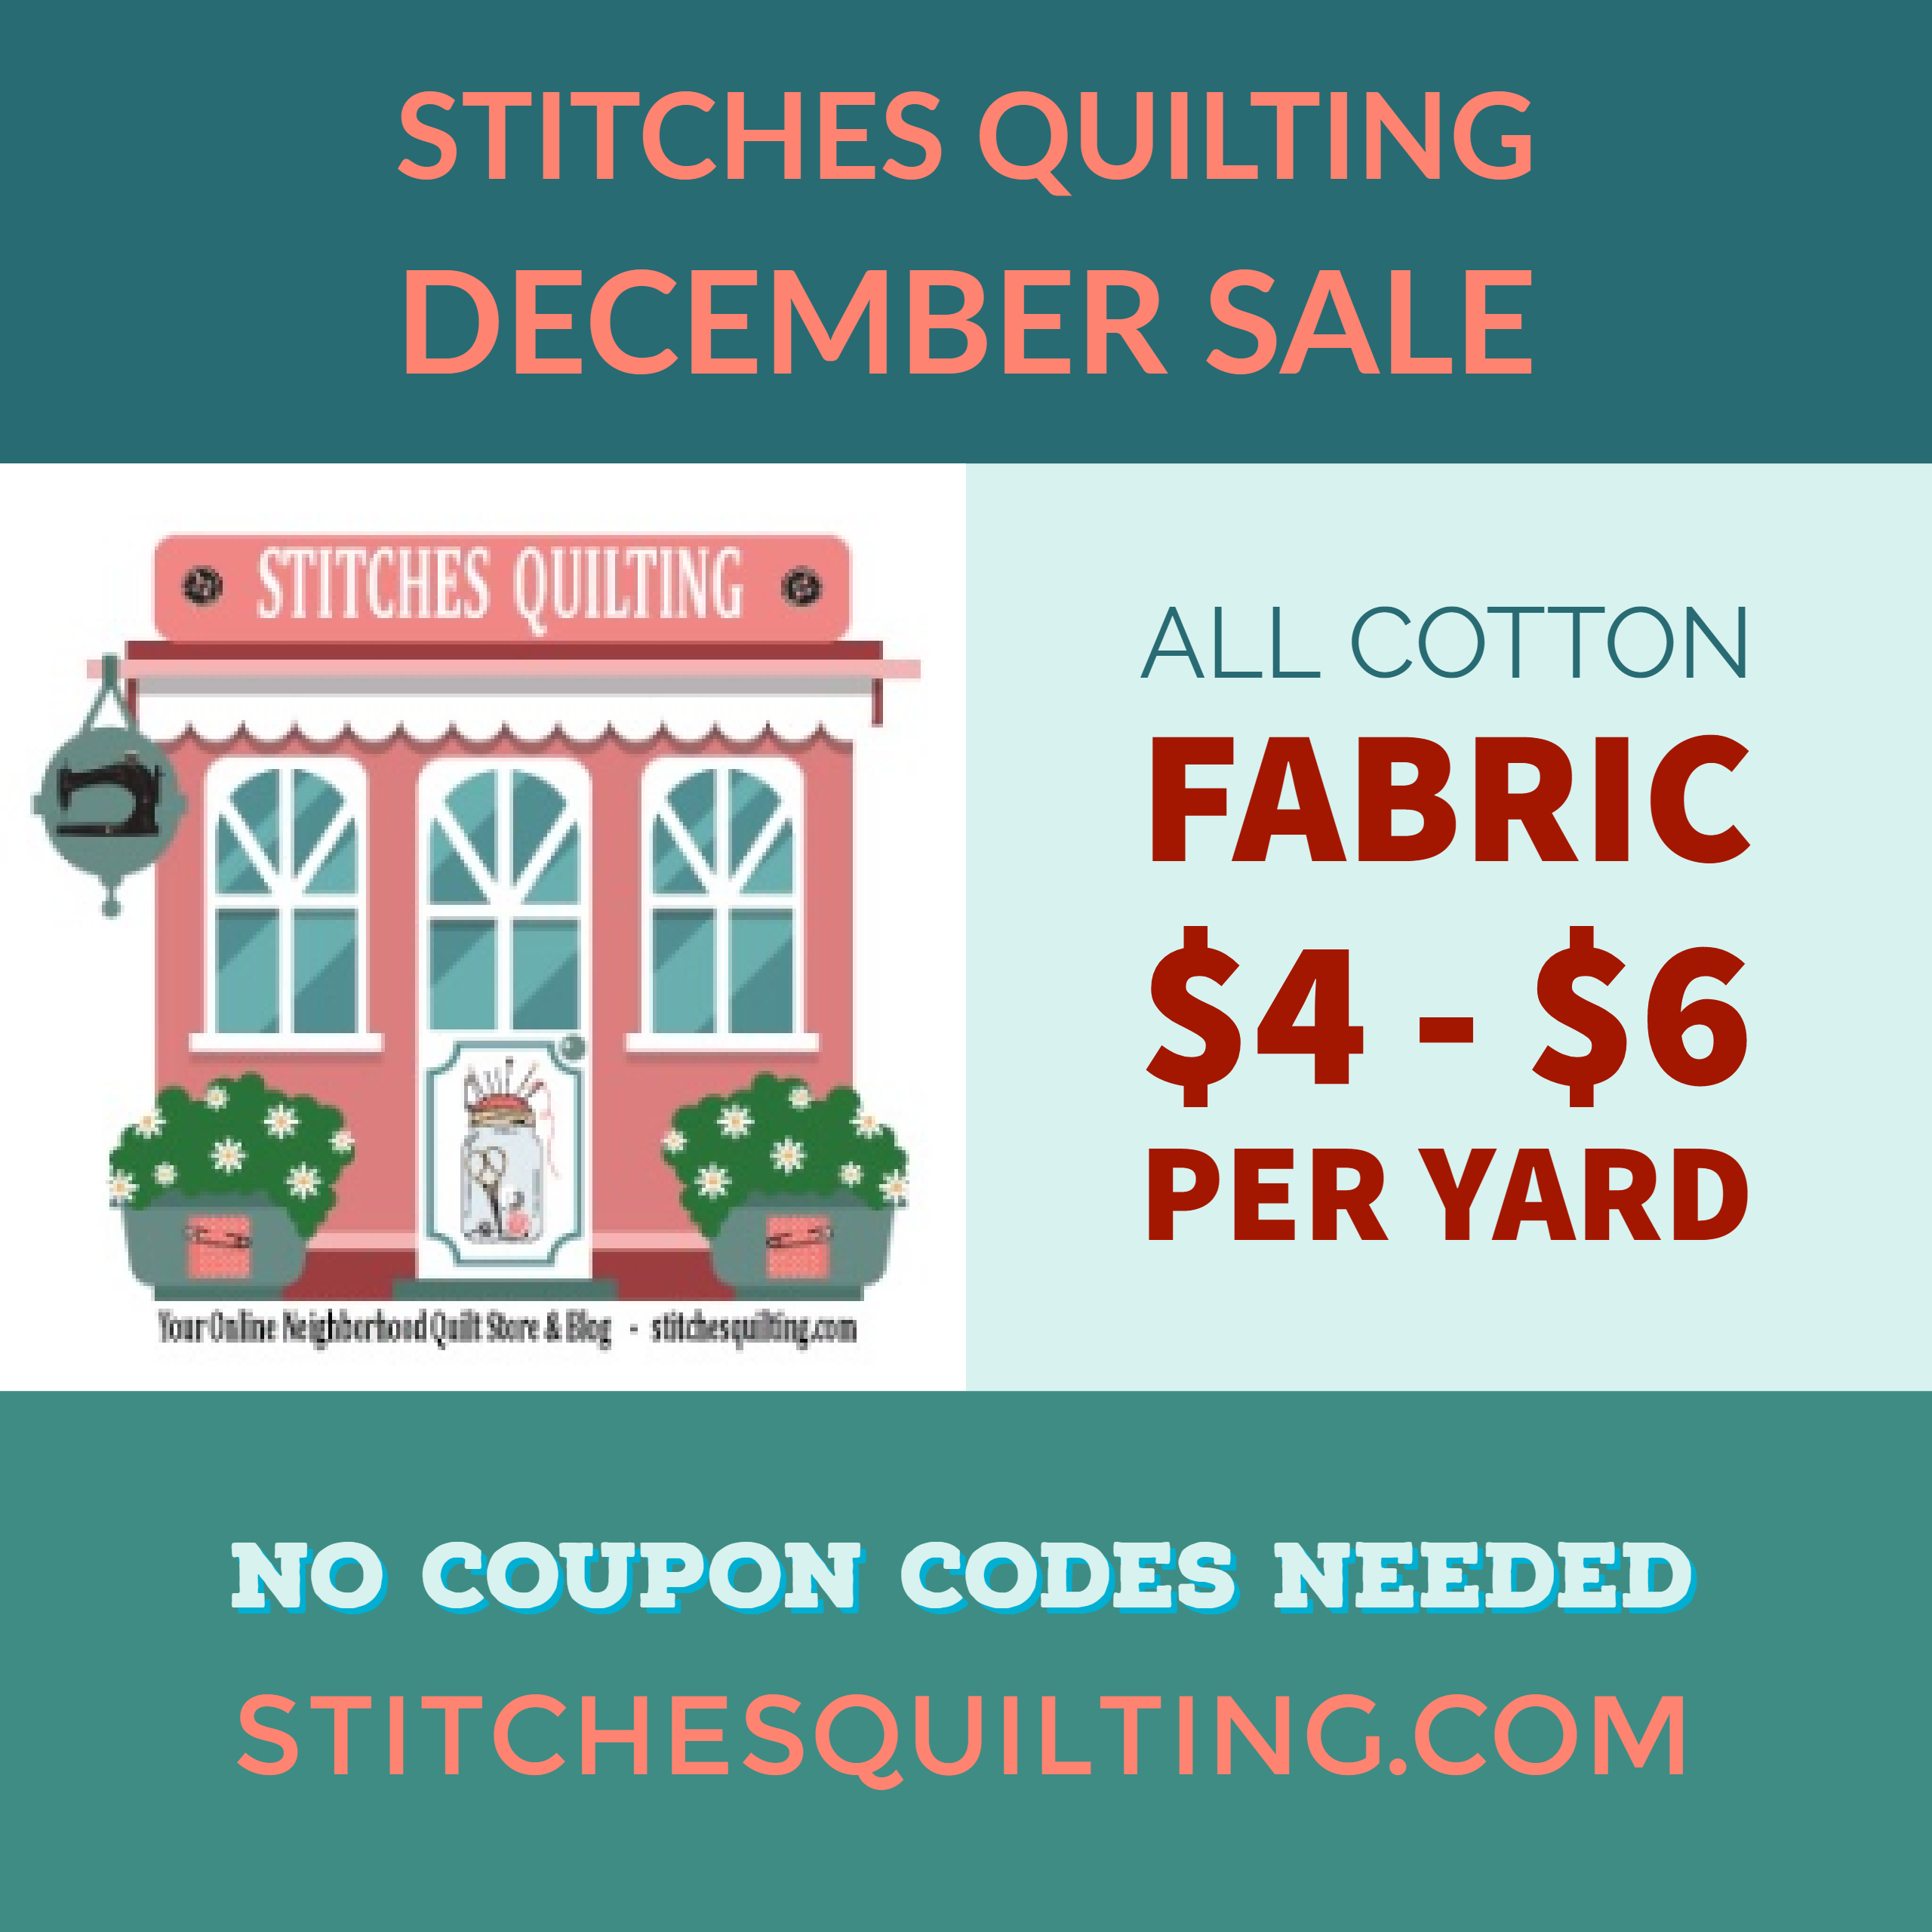 Stitches Quilting December Fabric Sale